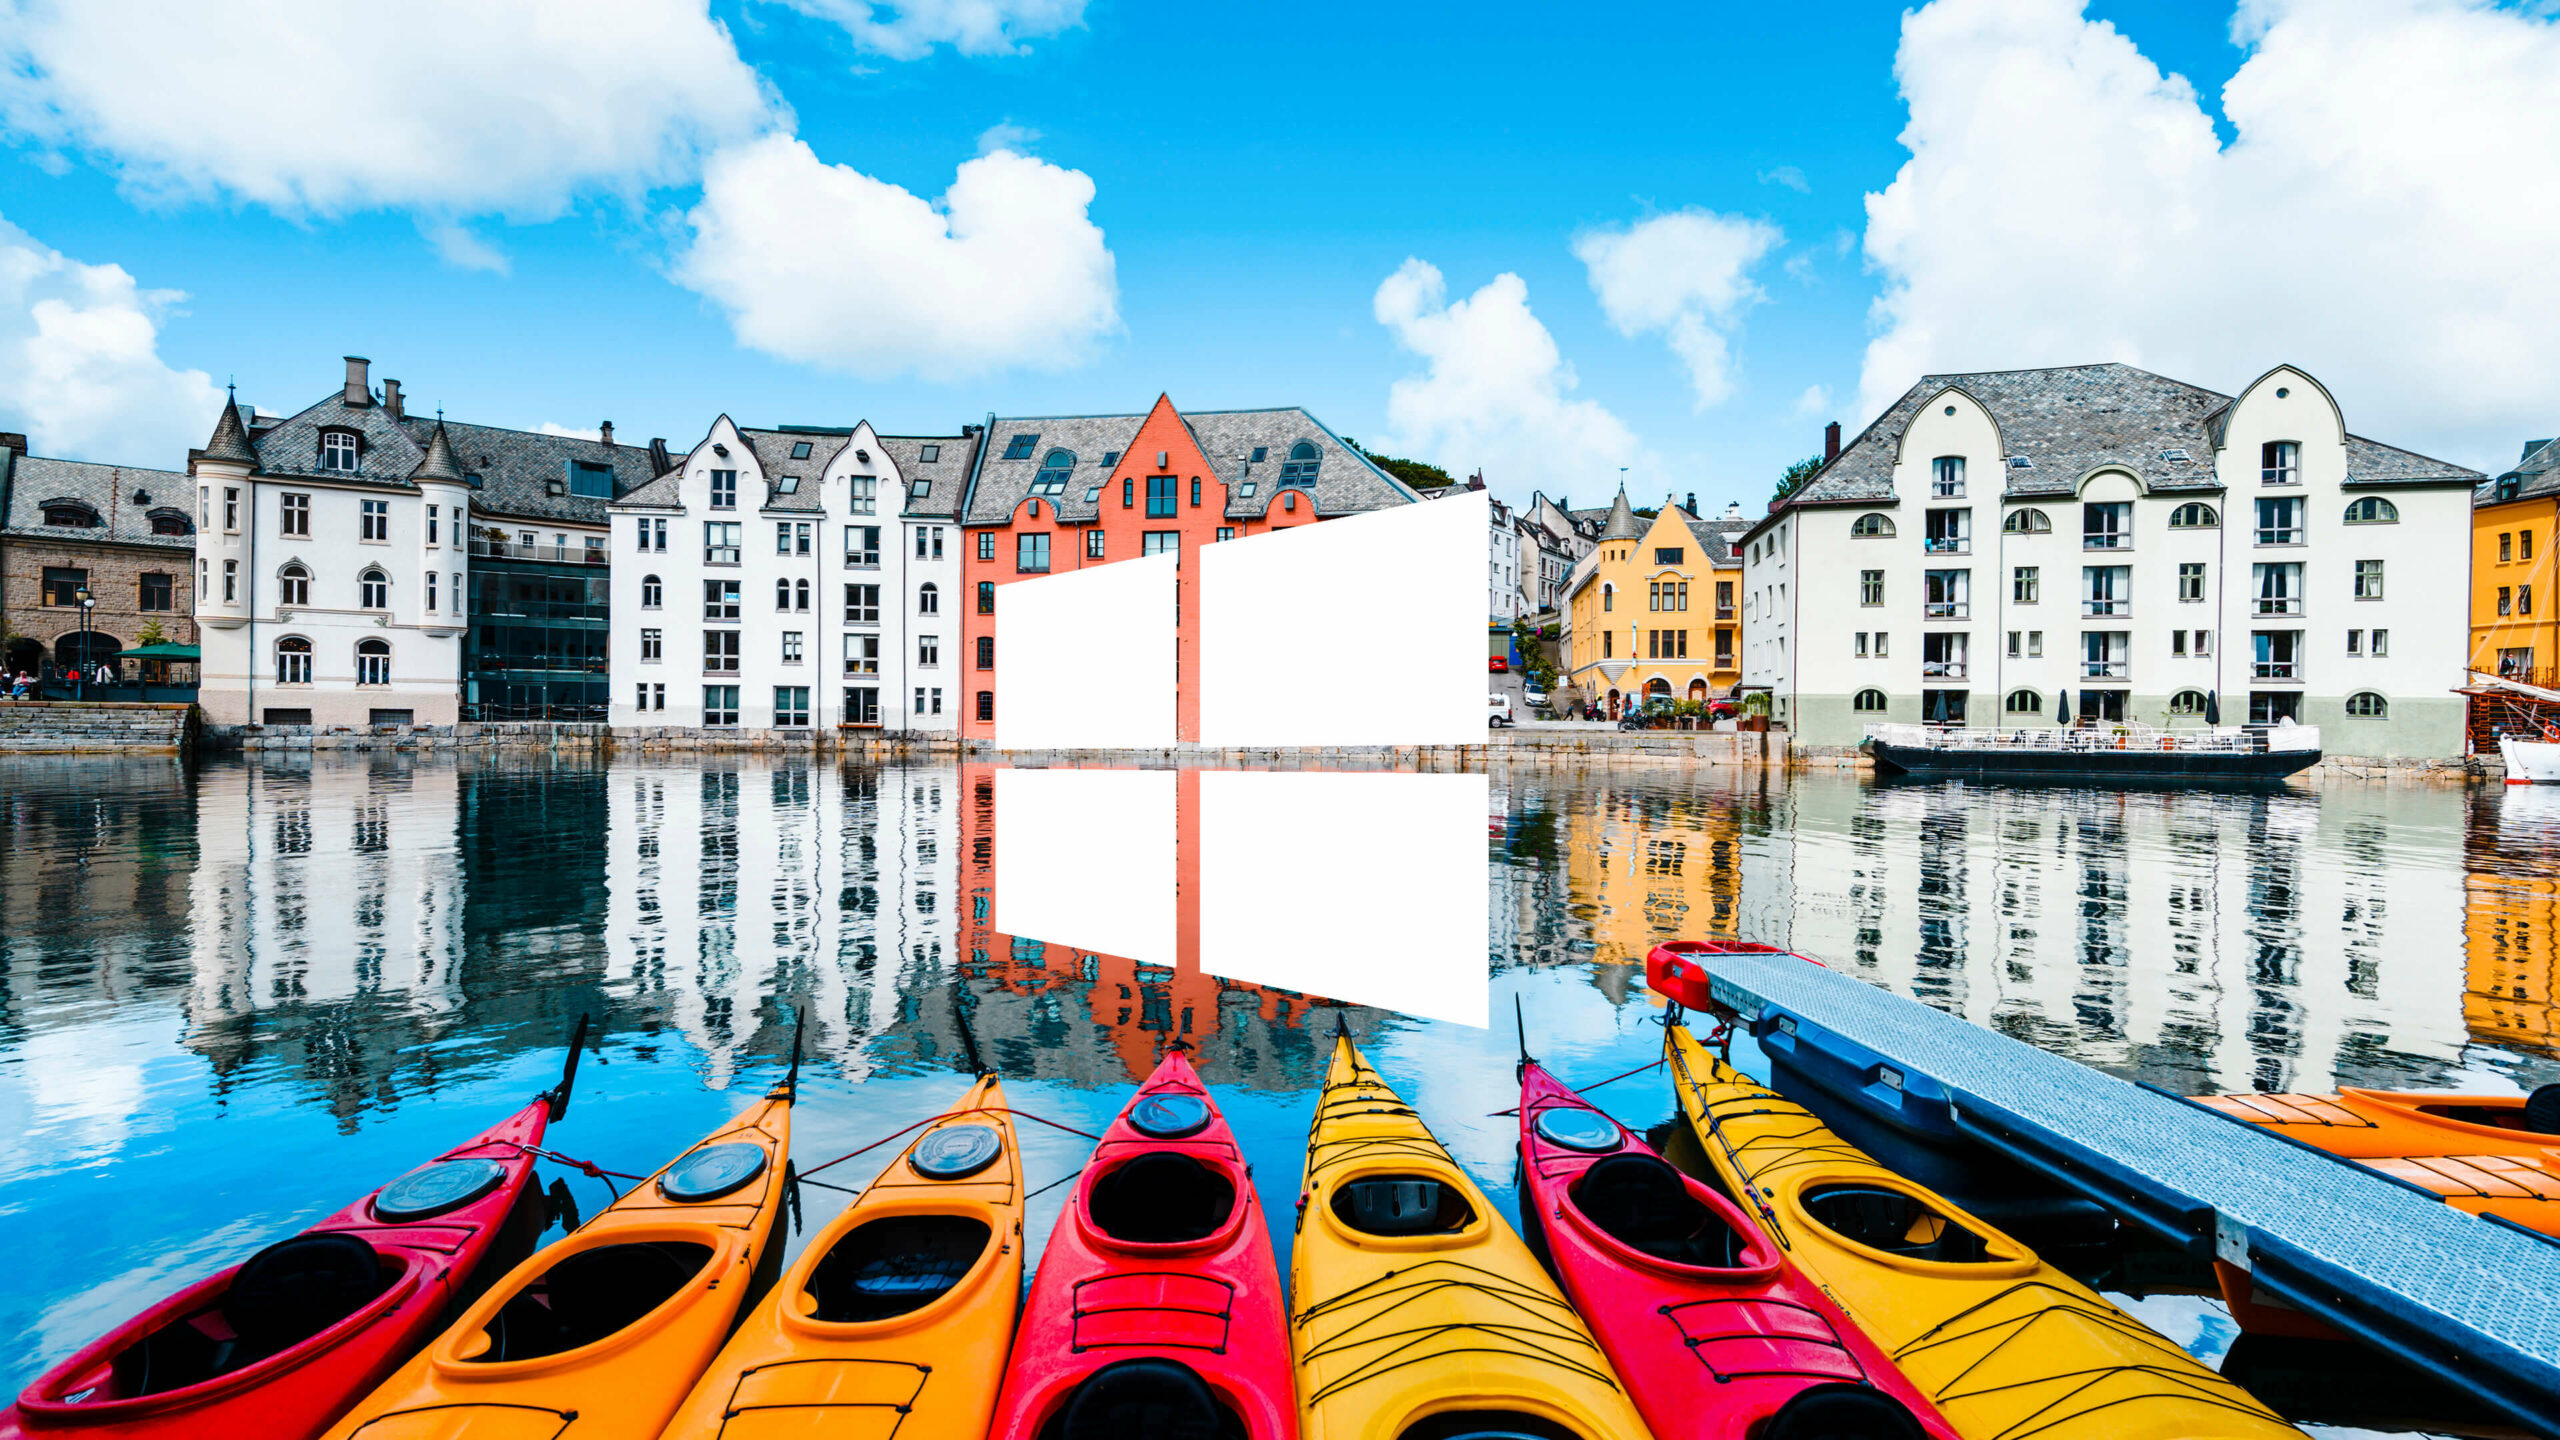 Download Windows 10 Wallpapers 4k Just Released By Microsoft